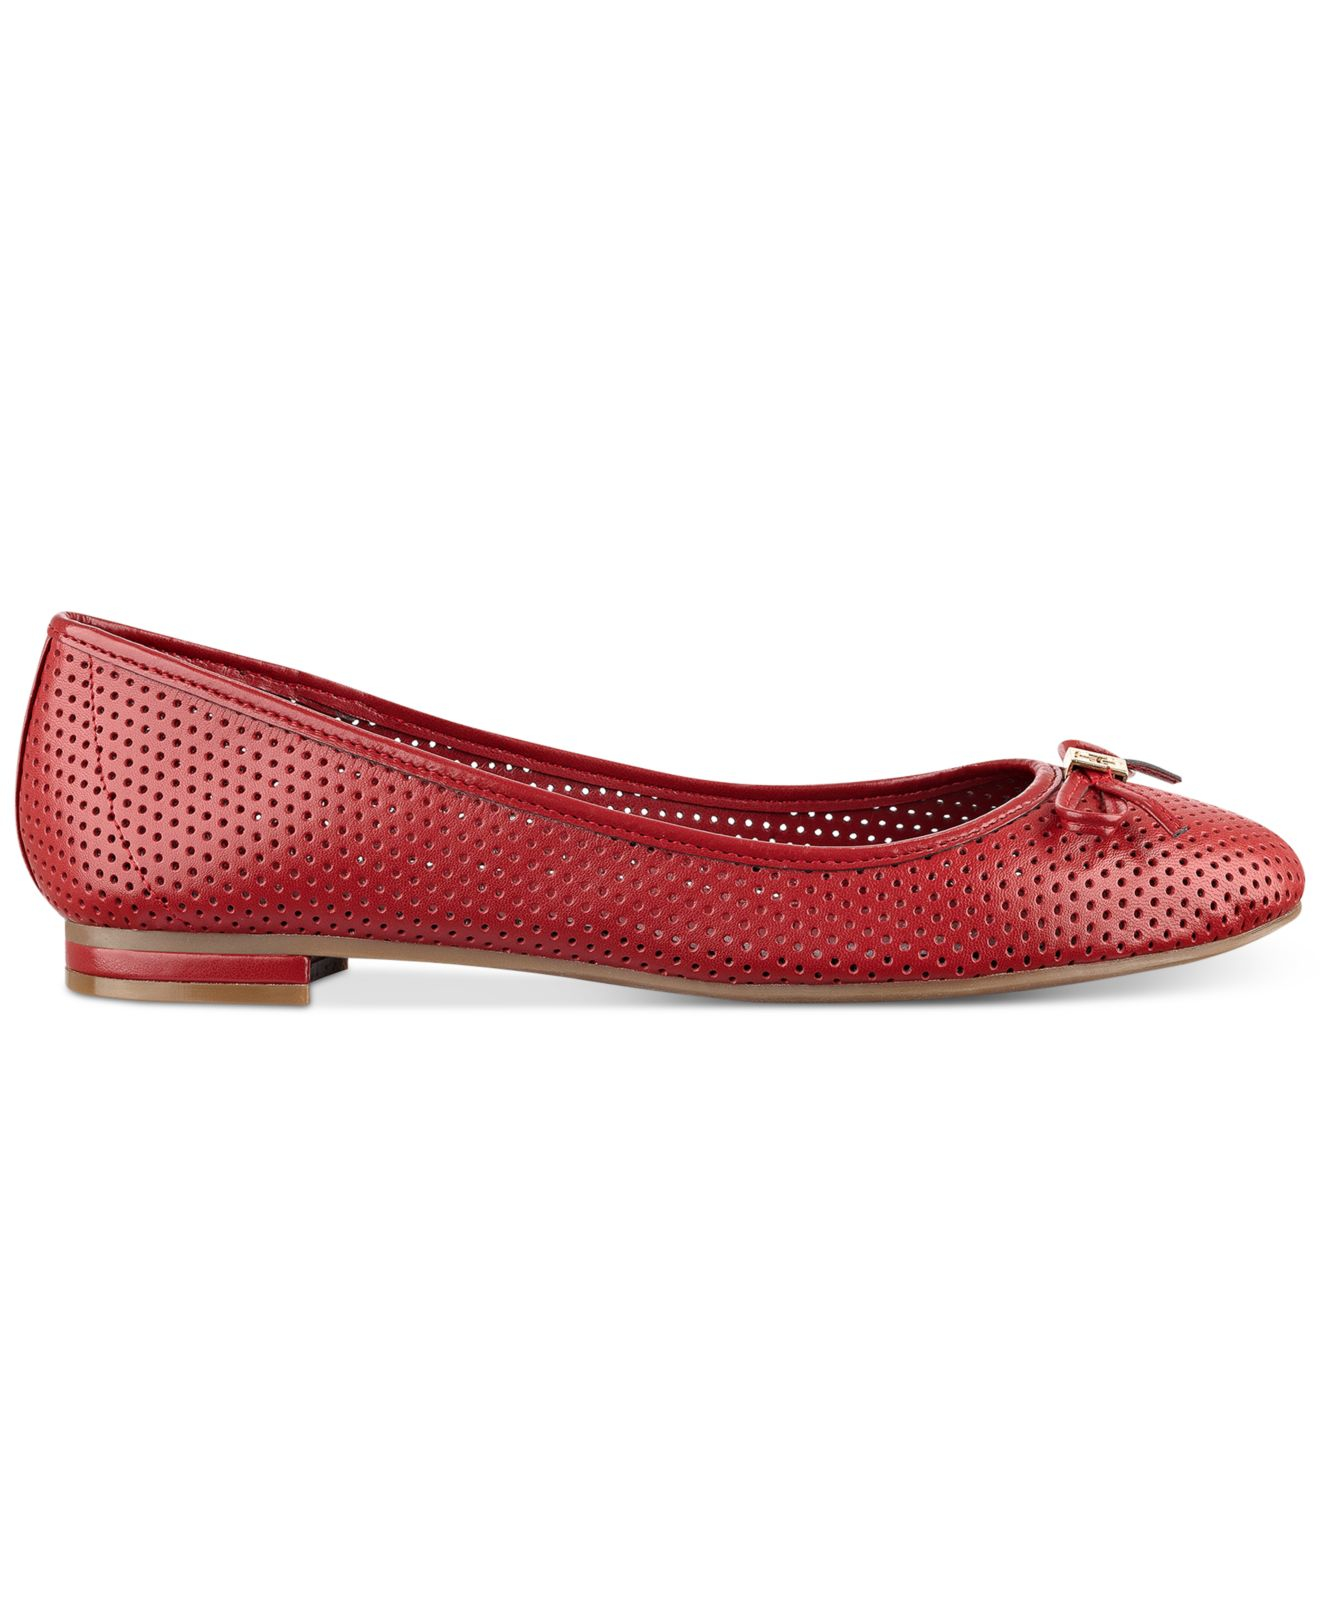 Tommy Hilfiger Leather Mirella Perforated Ballet Flats In